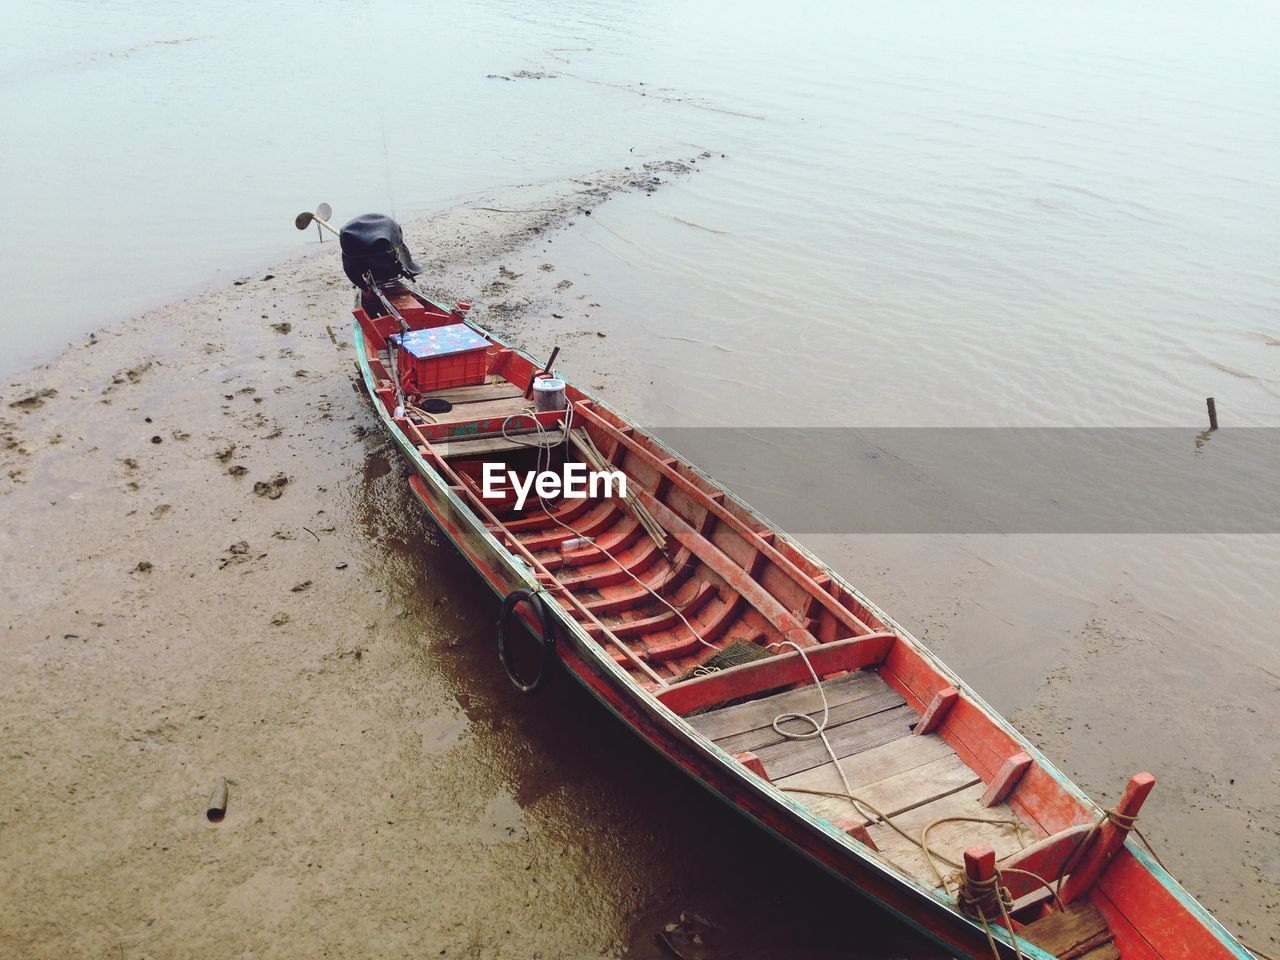 water, nautical vessel, transportation, high angle view, day, mode of transportation, nature, sea, beach, tranquility, outdoors, beauty in nature, land, moored, one person, tranquil scene, rowboat